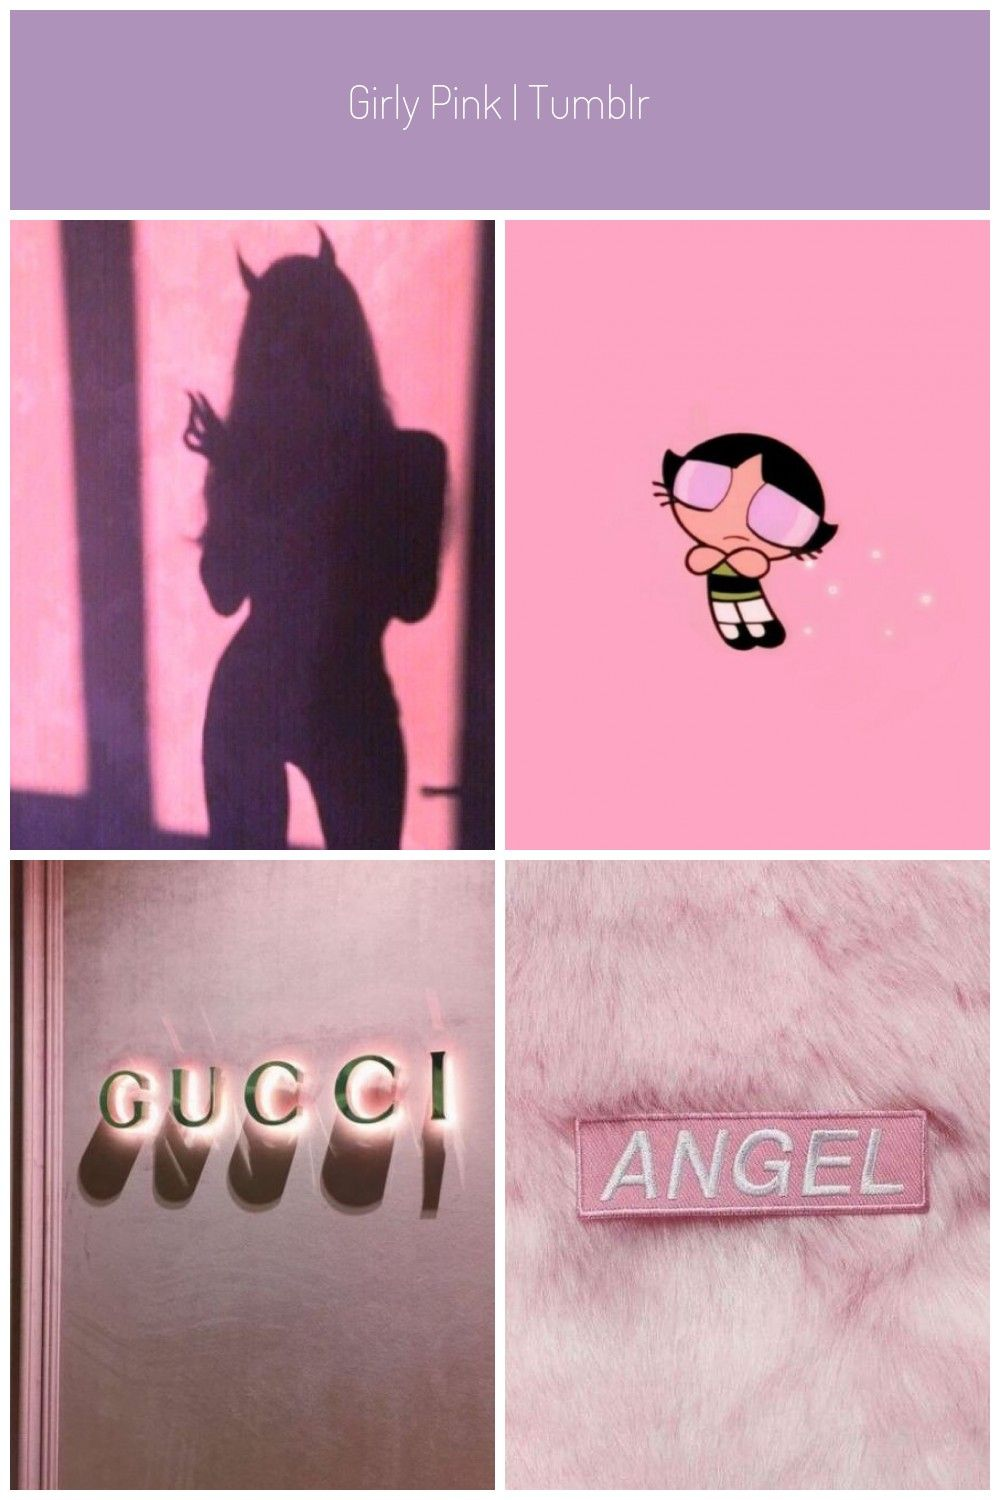 Girly Pink Tumblr Pink Tumblr Girly Pink Tumblr Pink Tumblr Aesthetic Pink Wallpaper Iphone Pink Instagram